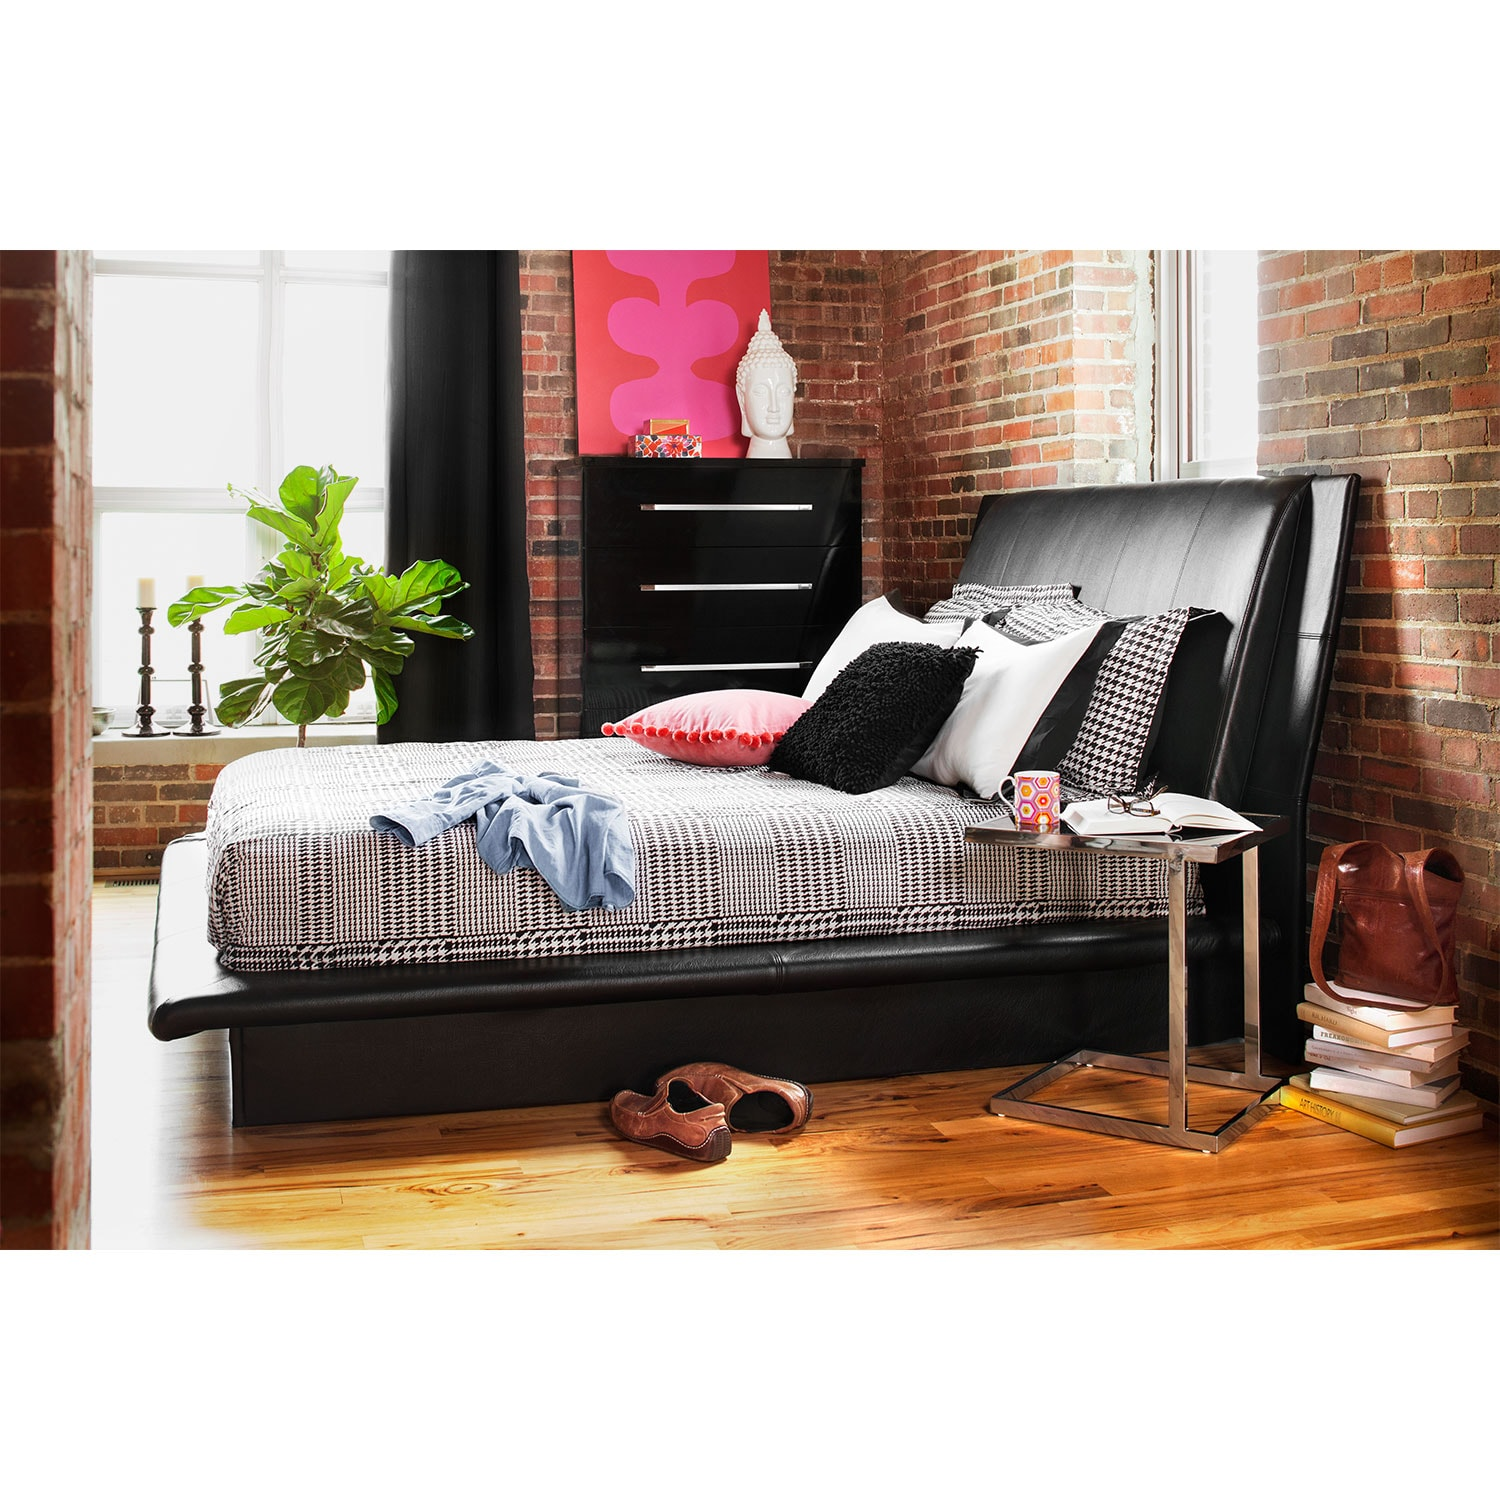 Dimora Queen Upholstered Bed Black American Signature Furniture